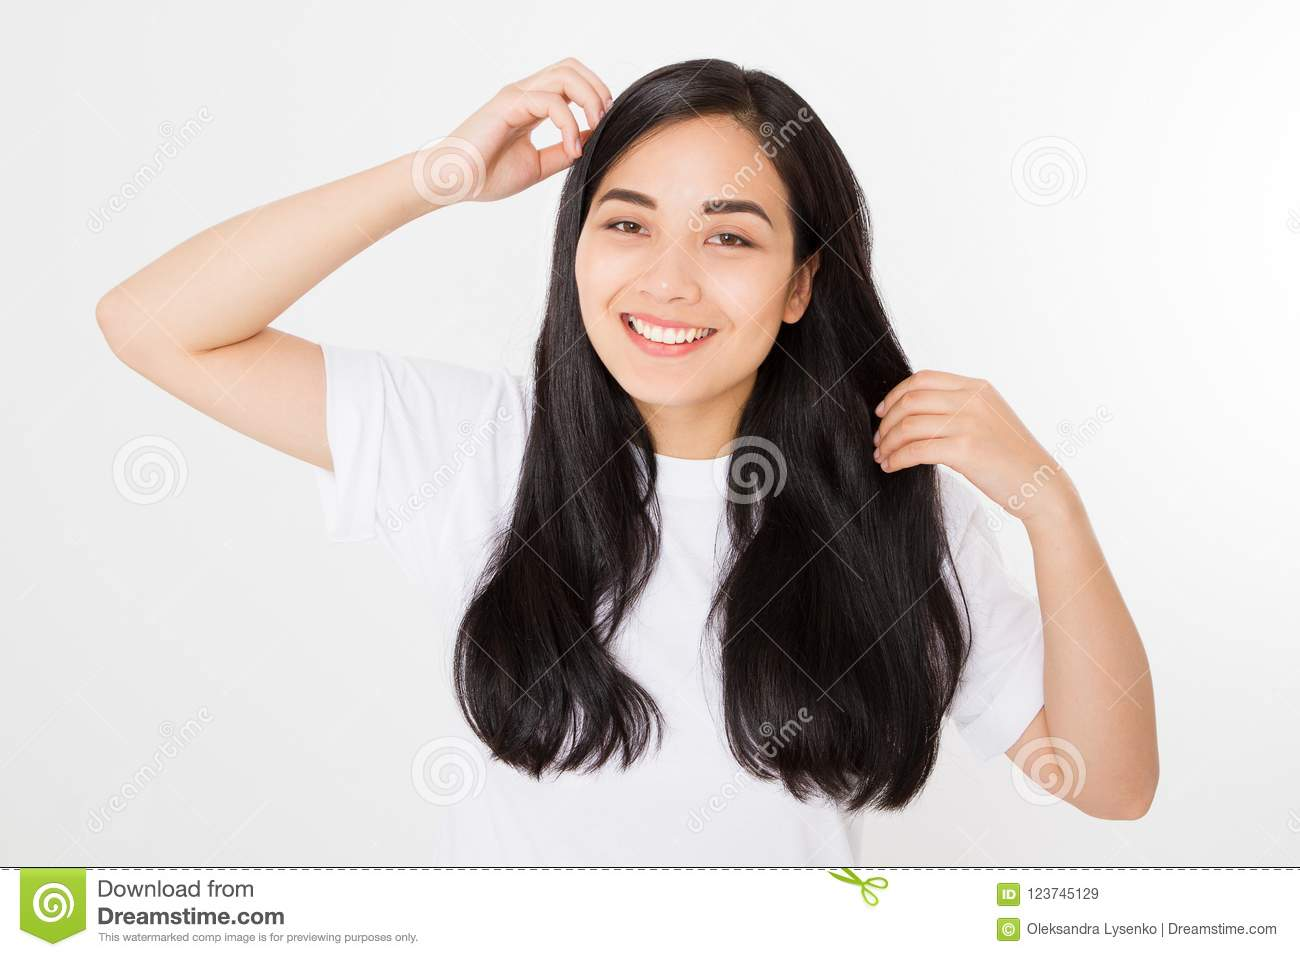 Young asian woman with brunette healthy clean shiny hair isolated on white background. Girl long hairstyle. Copy space.